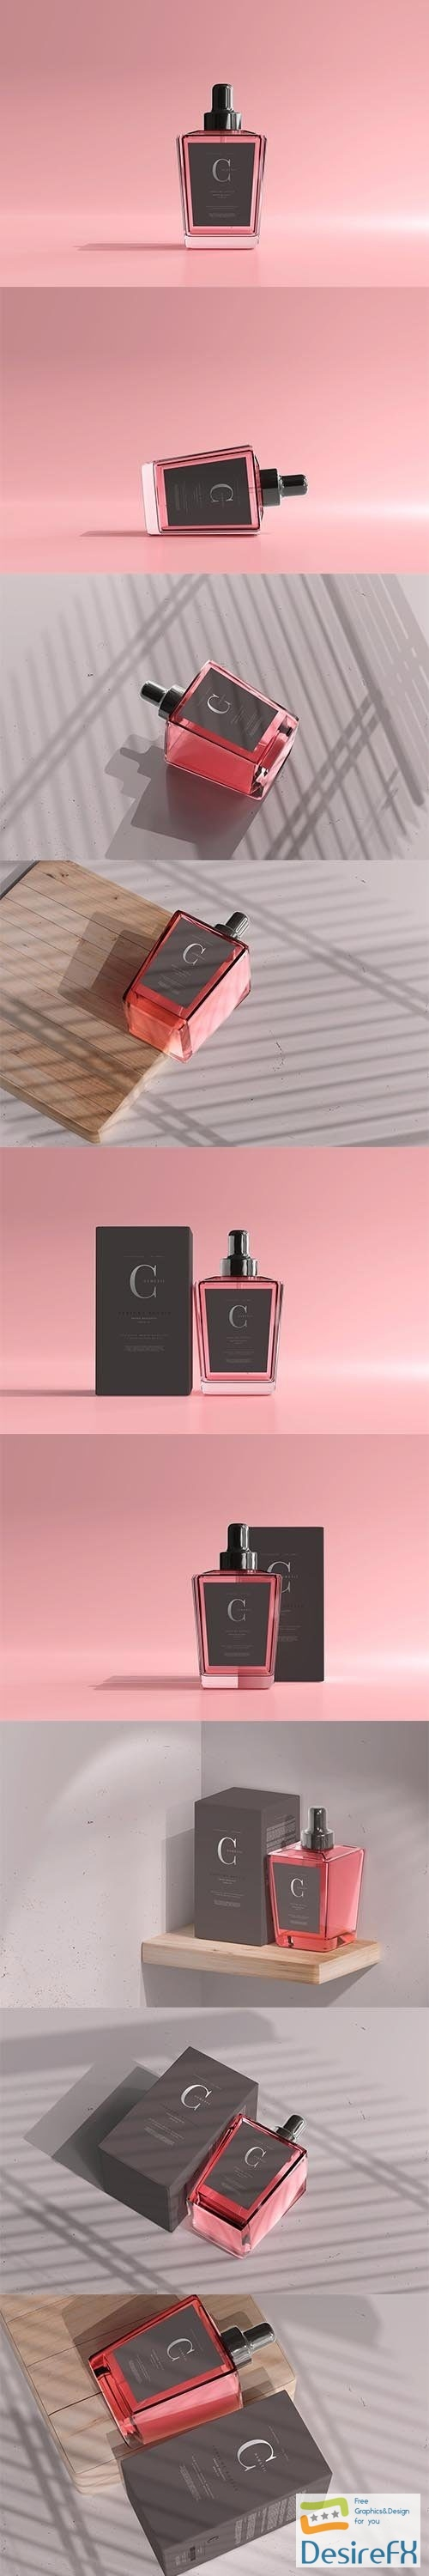 CreativeMarket - Perfume Bottle with Box Mockup 6056065